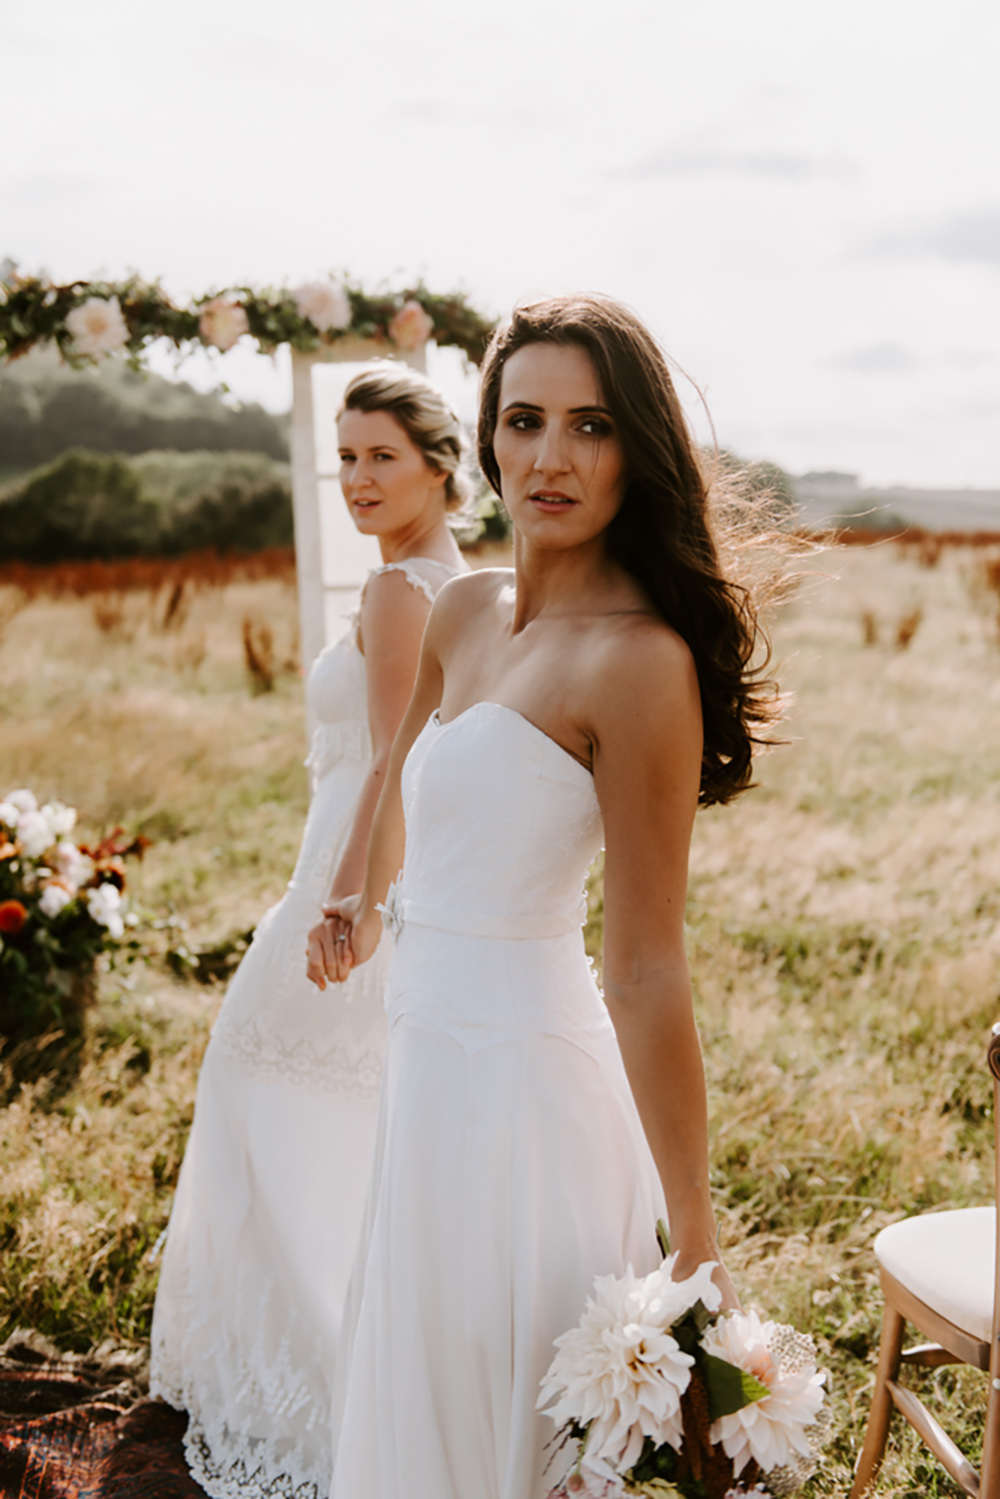 Bride Bridal Strapless Dress Gown Ethical Wedding Ideas Sadie Osborne Photography